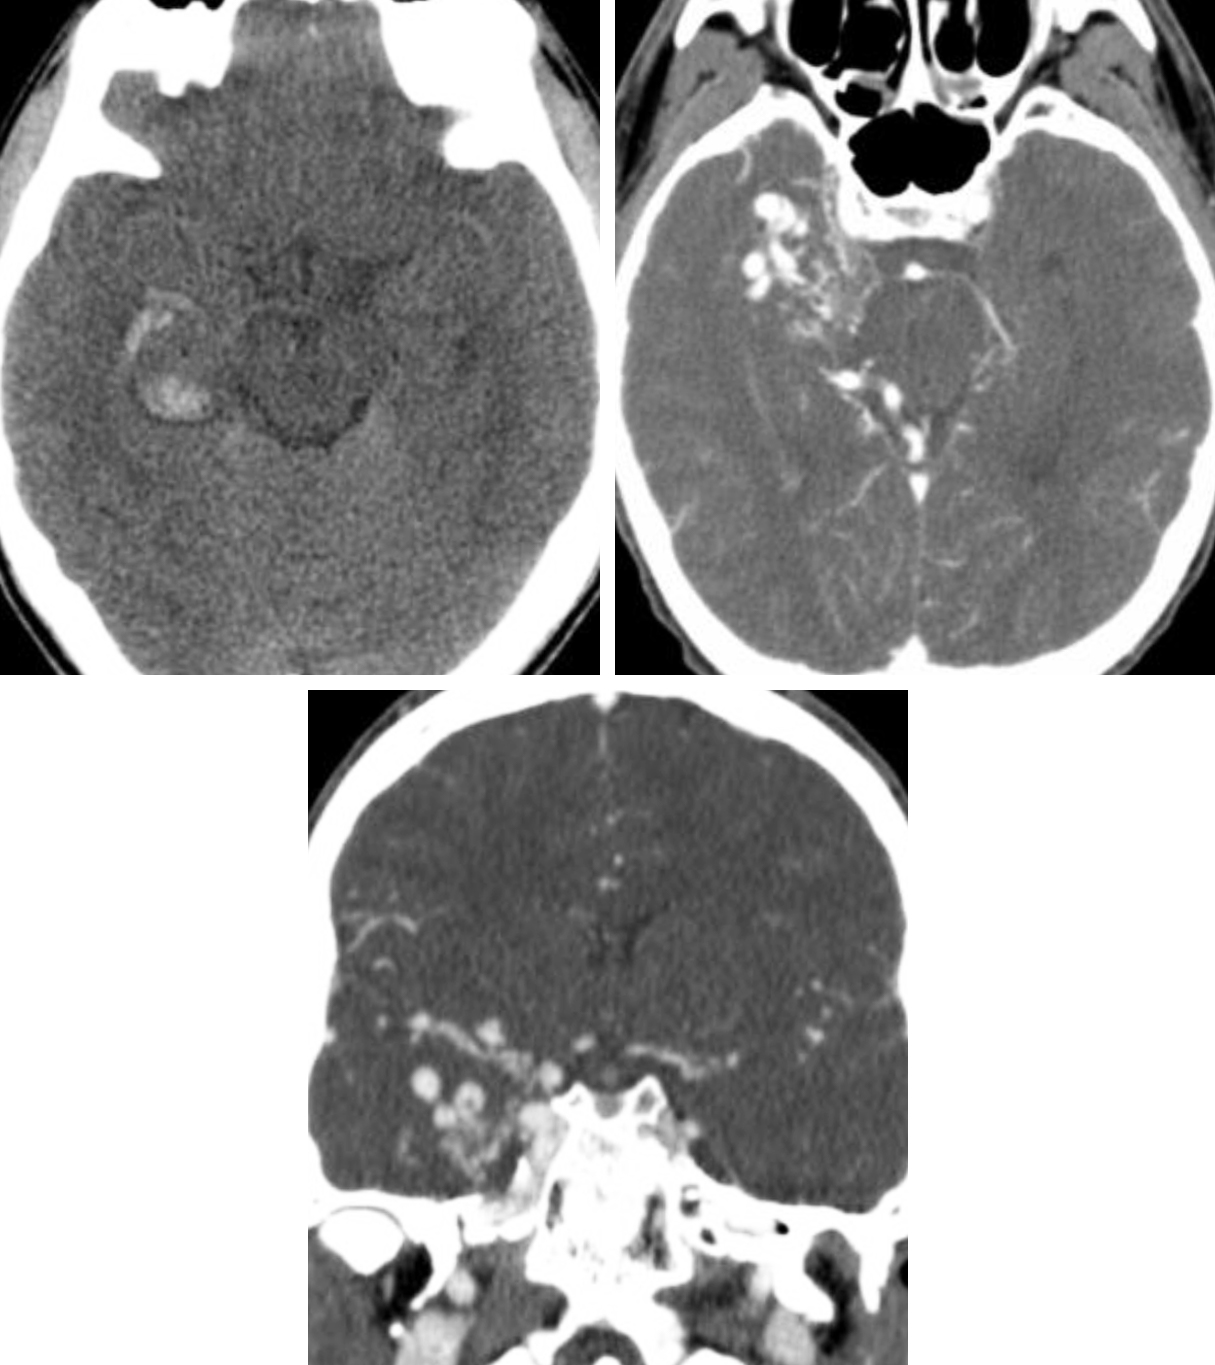 Figure 1: (Top Left) Typical NECT appearance of an AVM with relatively ill-defined isodense to hyperdense vessels replacing brain parenchyma with evidence of small adjacent parenchymal hemorrhage in the right temporal lobe. (Top Right and Bottom) CT angiography (CTA) increases the conspicuity of the underlying AVM, revealing abnormal right temporal nidiform vessels.